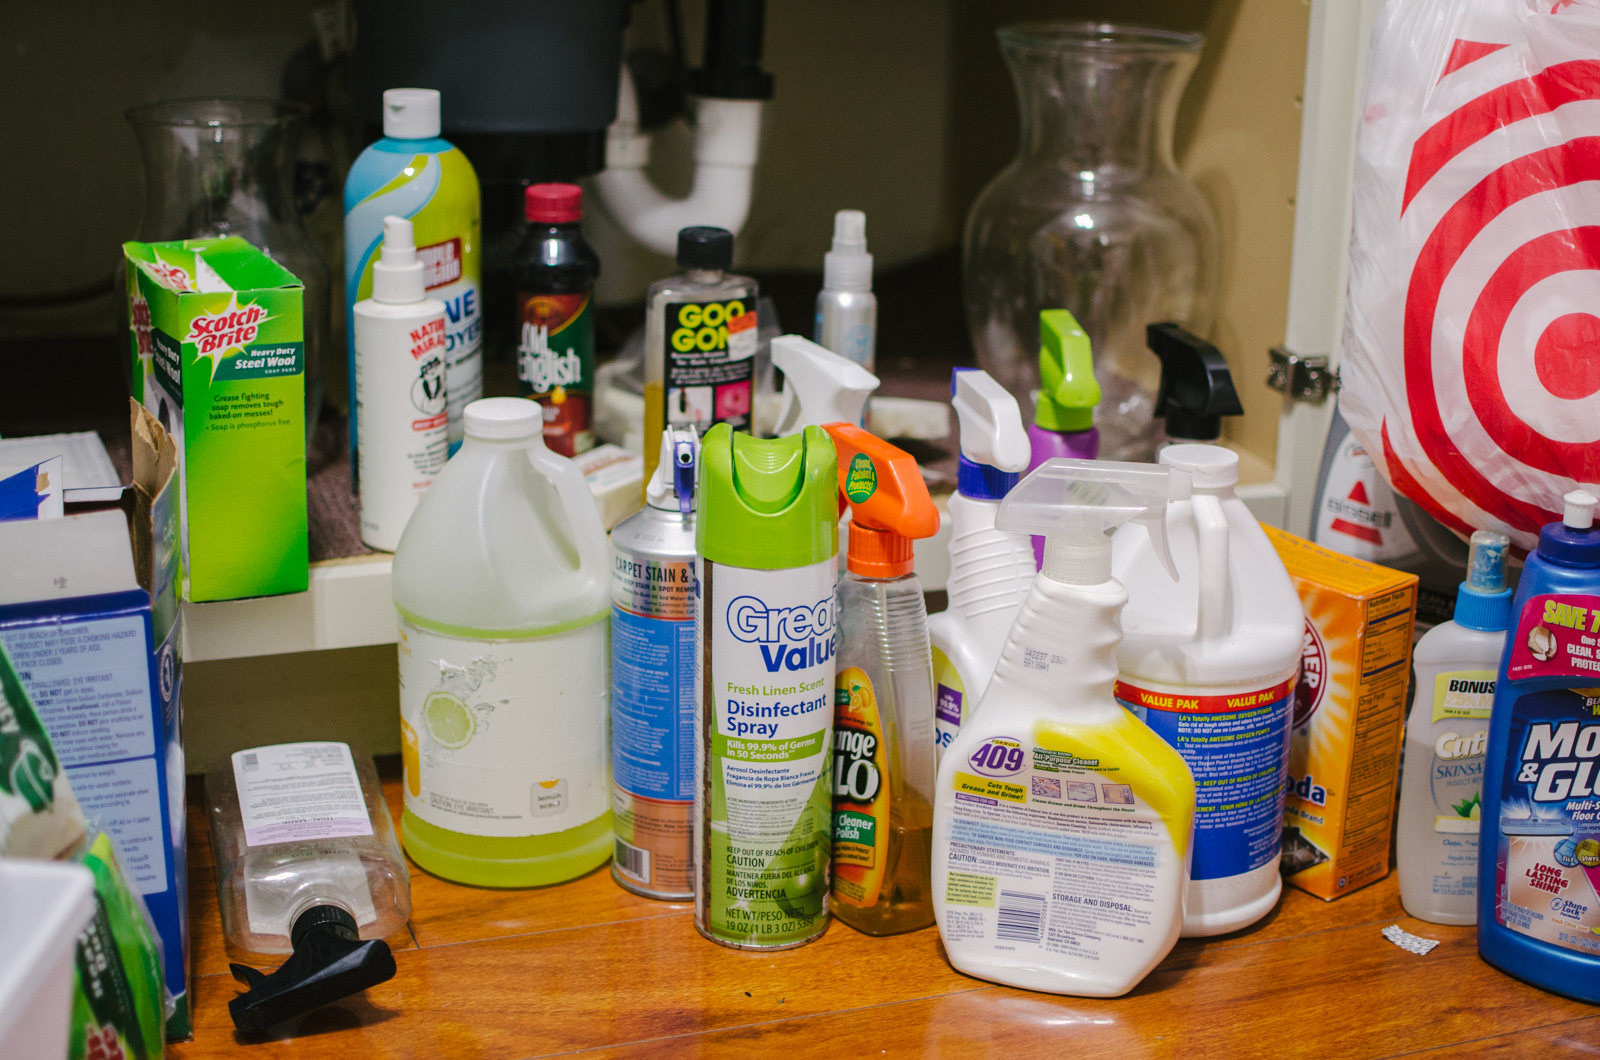 how to organize under the kitchen sink - dollar store organization hacks | You're going to love this kitchen organization before and after! Spend $5 and completely revamp your under sink cabinets! | bylaurenm.com